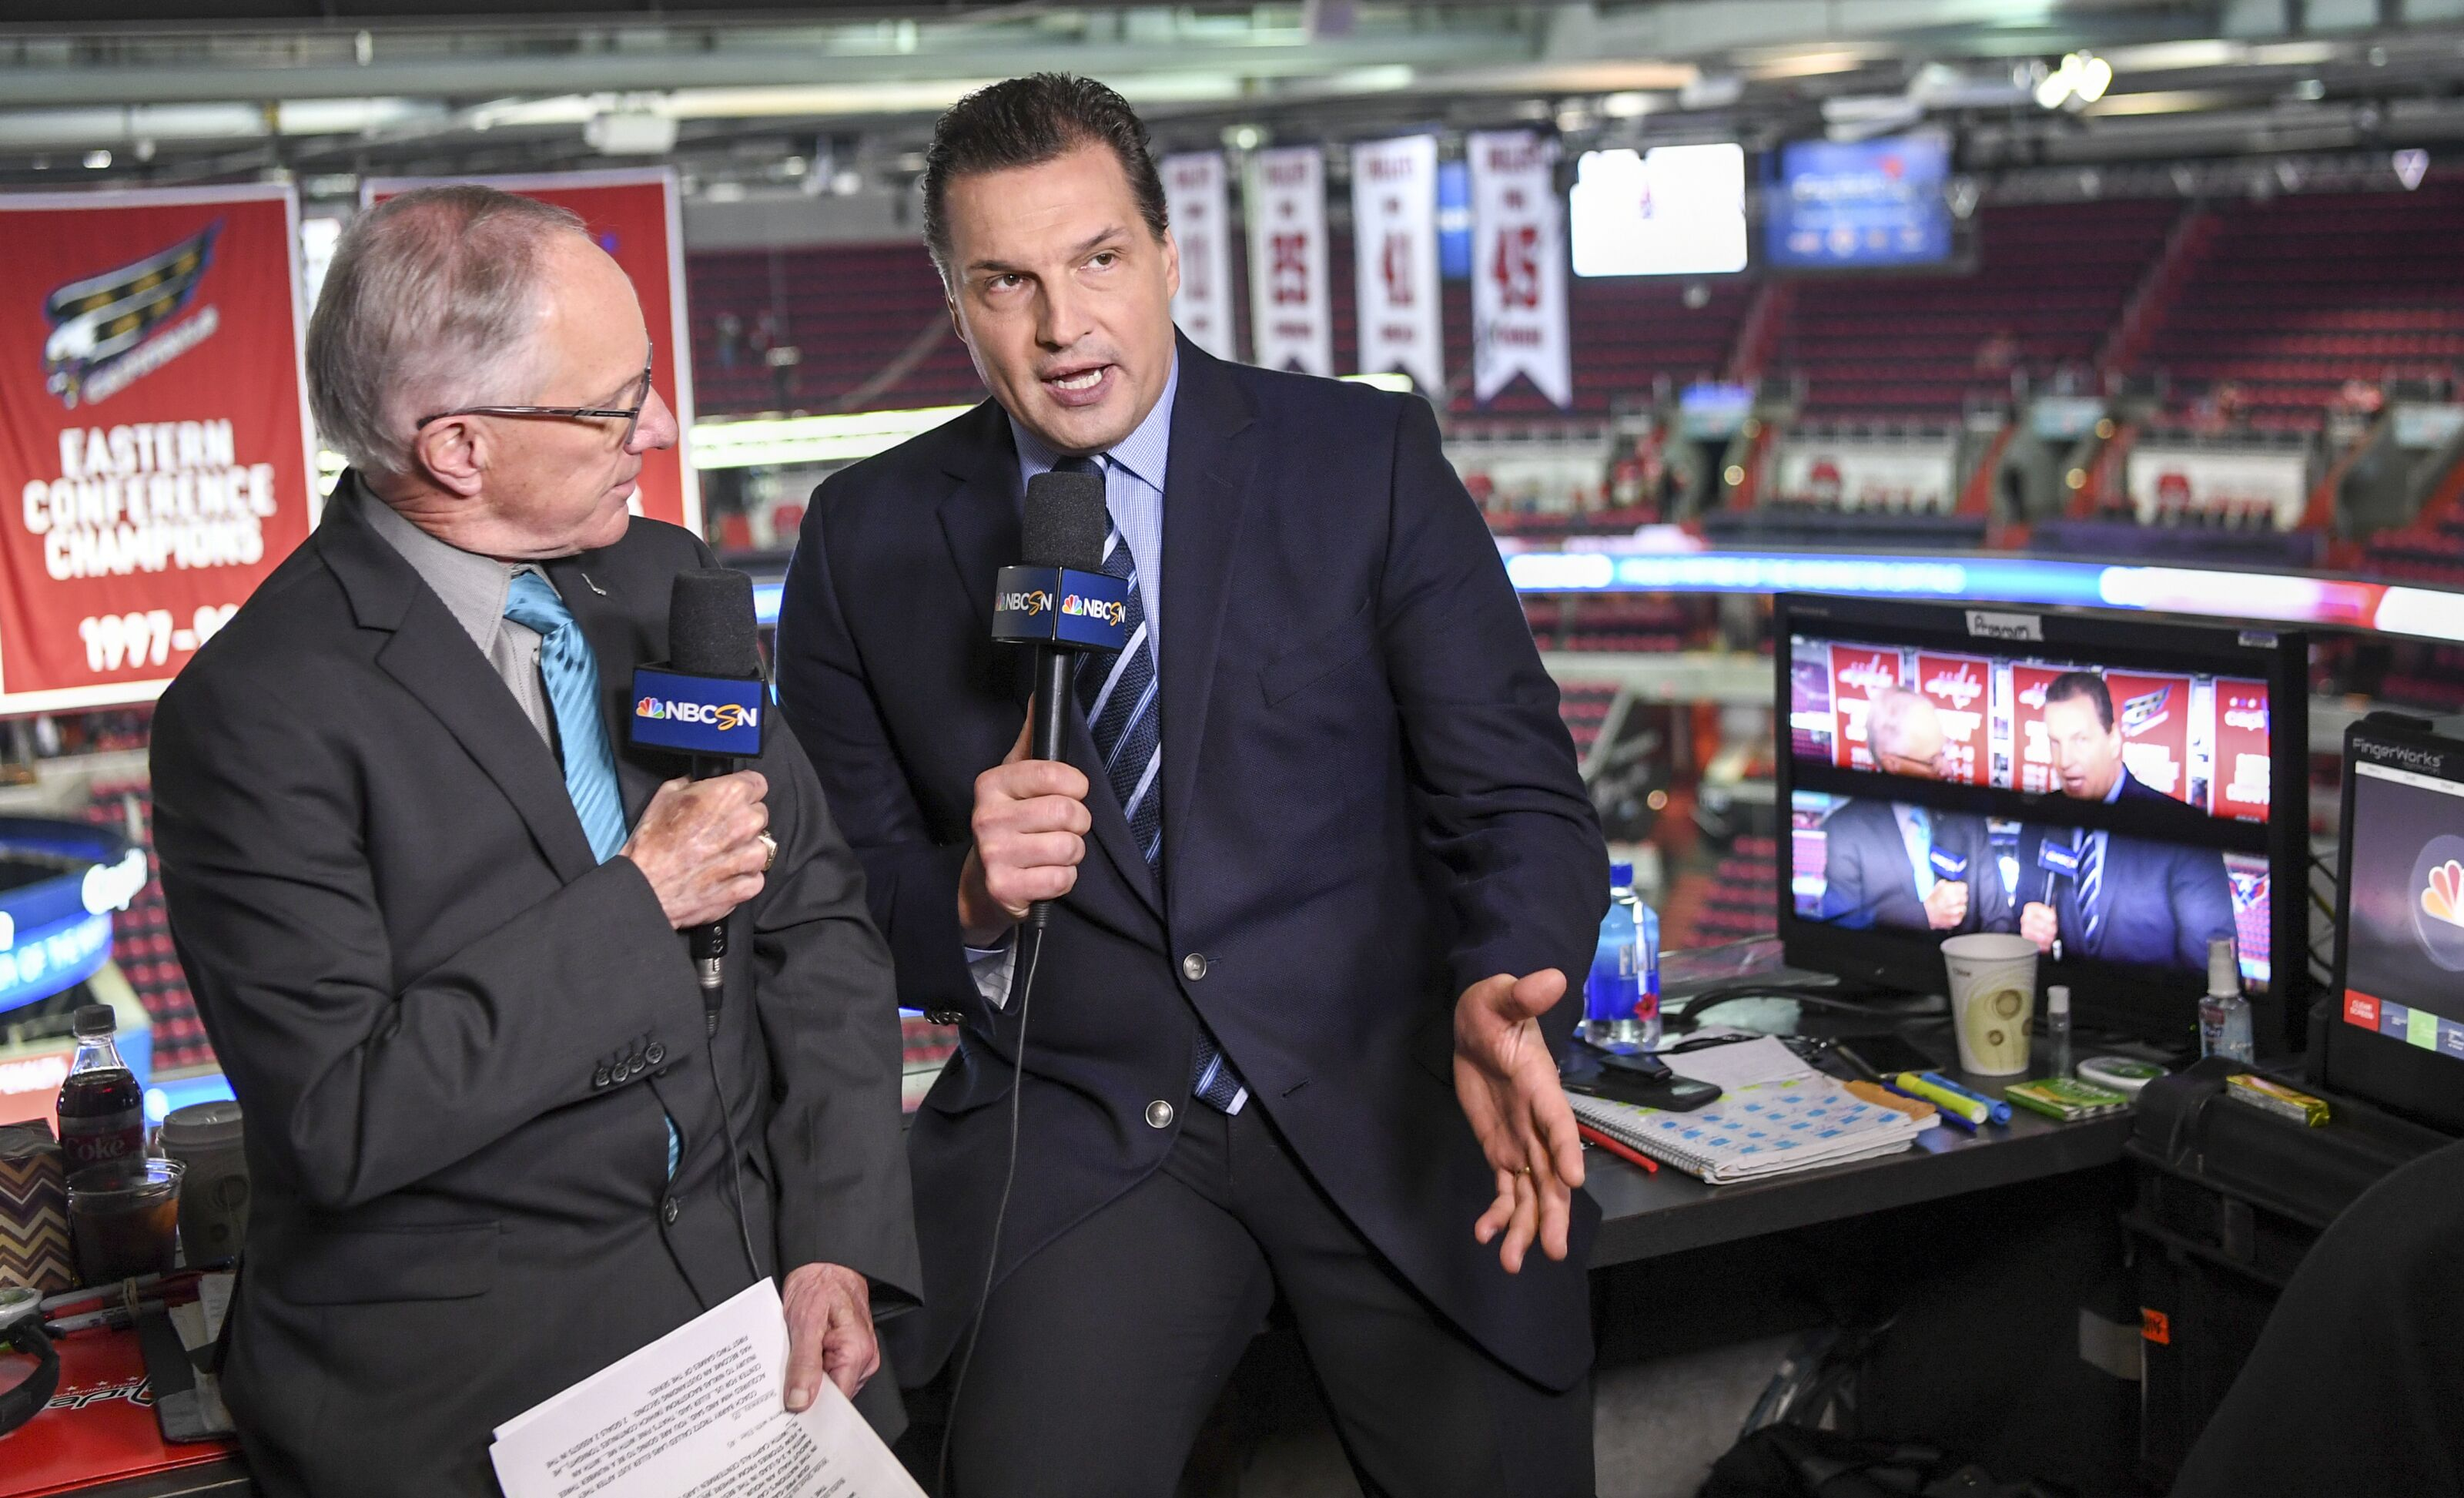 Pittsburgh Penguins history: Revisiting Ed Olczyk's coaching tenure